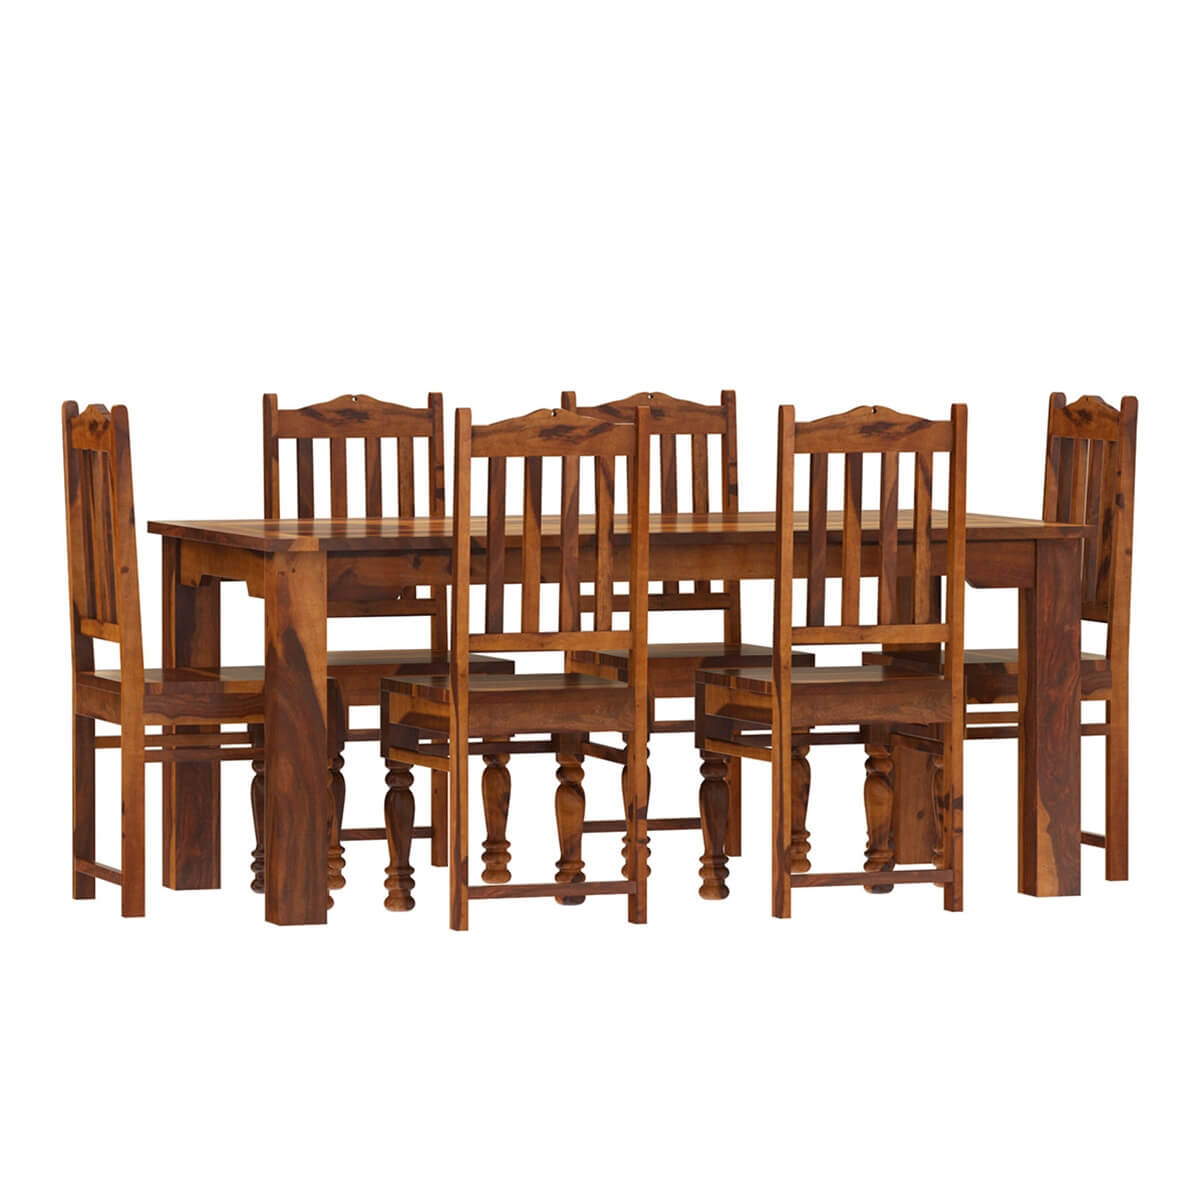 Unfinished Dining Room Chairs Rustic Solid Wood Dallas Dining Table With Chairs Set